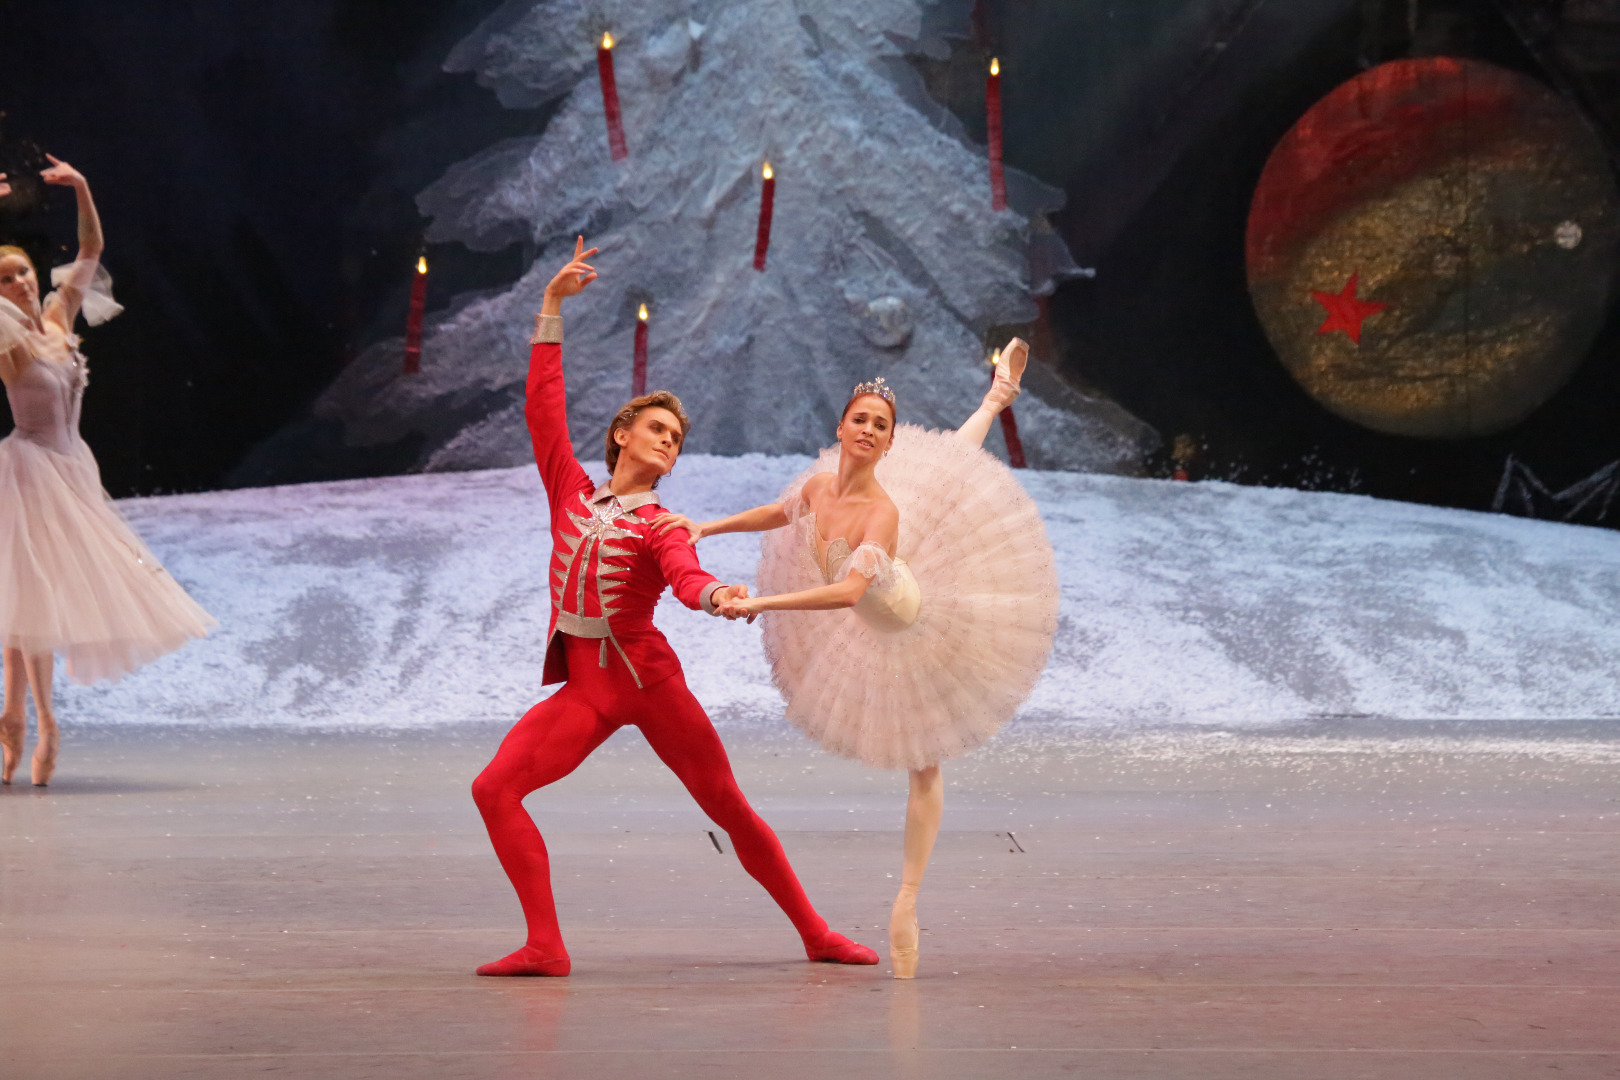 http://napajedla.cz/galerie/14/3.BOL_NUTCRACKER_OFFICIAL_VISUAL_HD_ANNA%20NIKULINA%20AND%20DENIS%20RODKIN%20%28c%29%20D.YUSUPOV.JPG